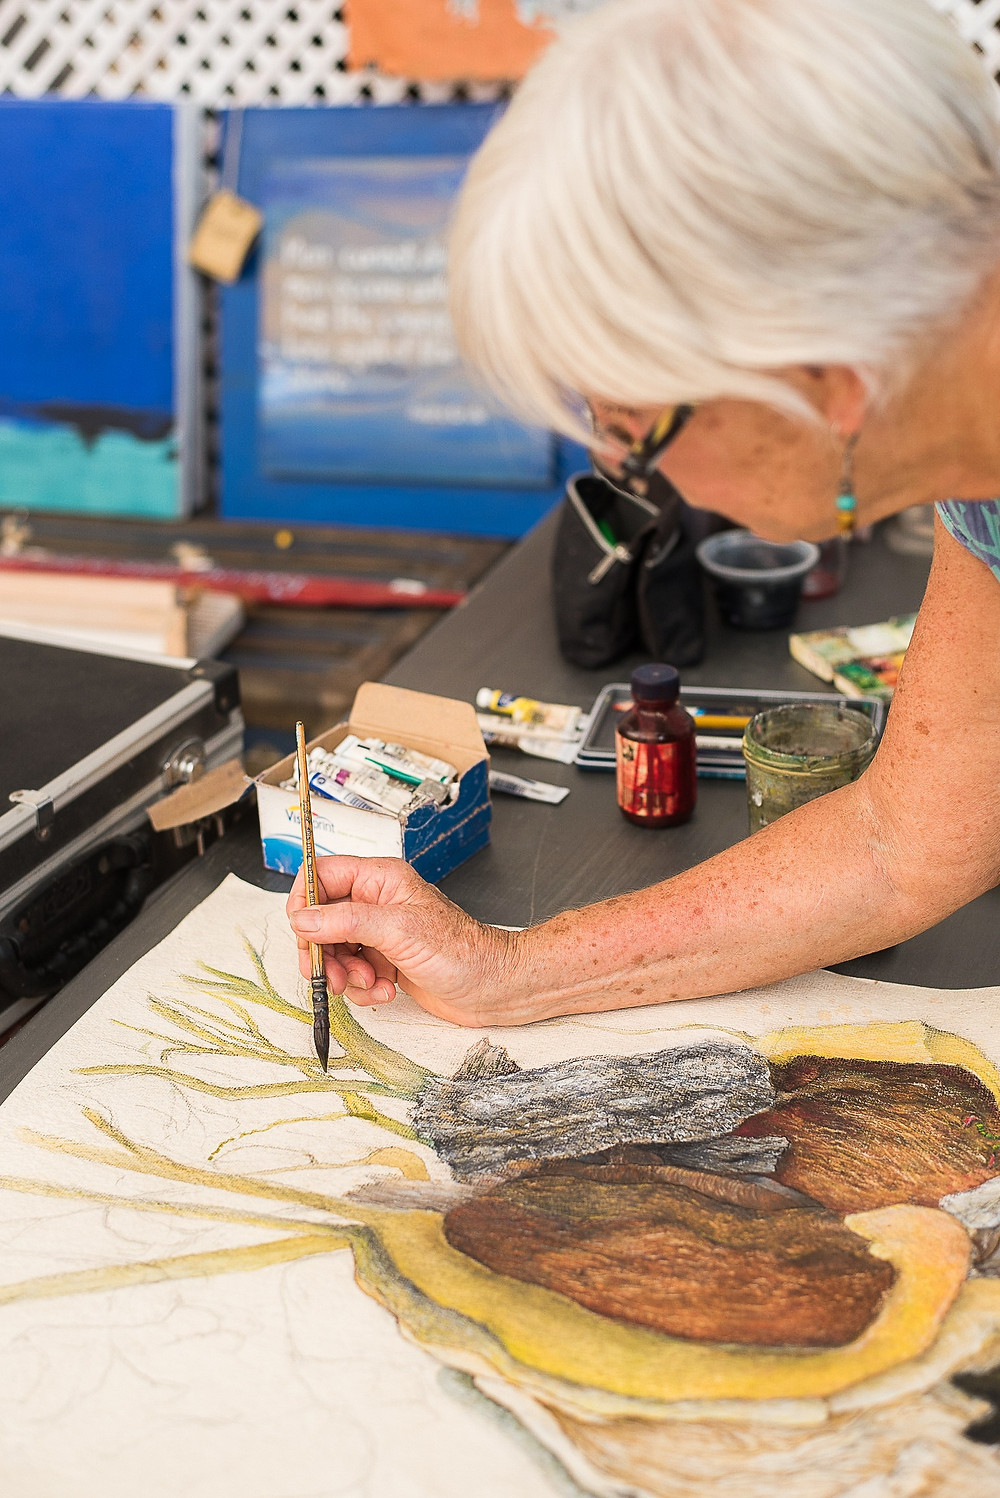 A white haired woman wearing glasses is bending over an artwork that she is working on. The artwork is a large drawing of hat appears to be a hollowed-out tree. On the table behind the artist you can see some of the materials she has been using - a pot of ink, a box of watercolours.